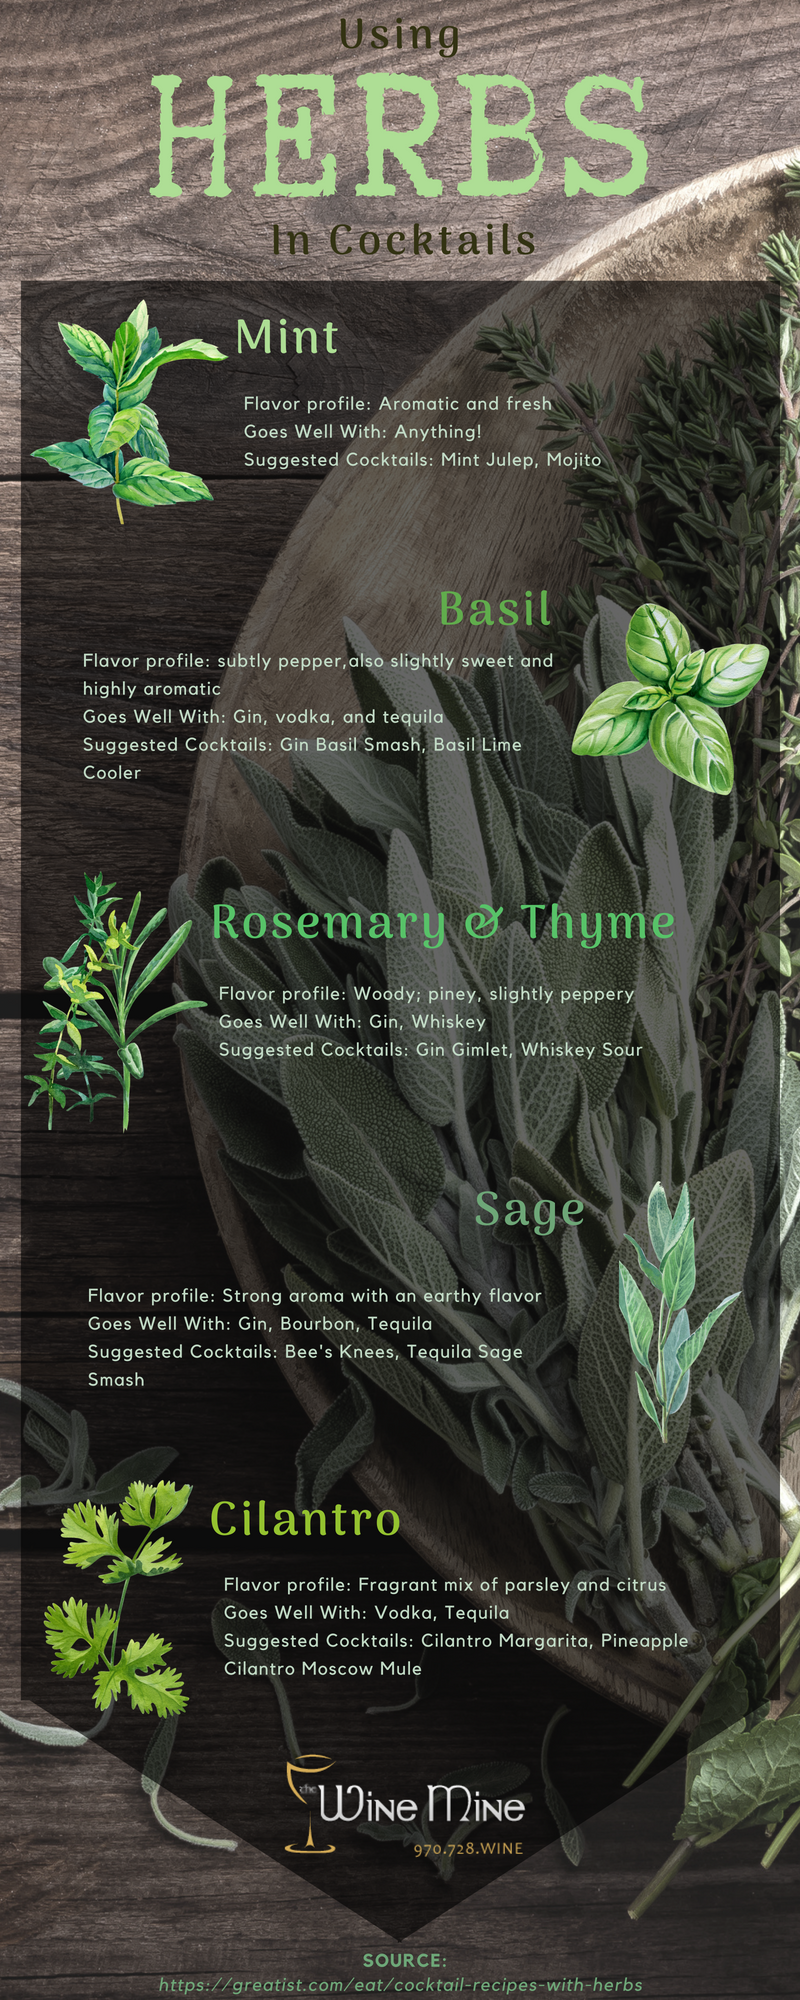 WineMine - herbs infographic.png